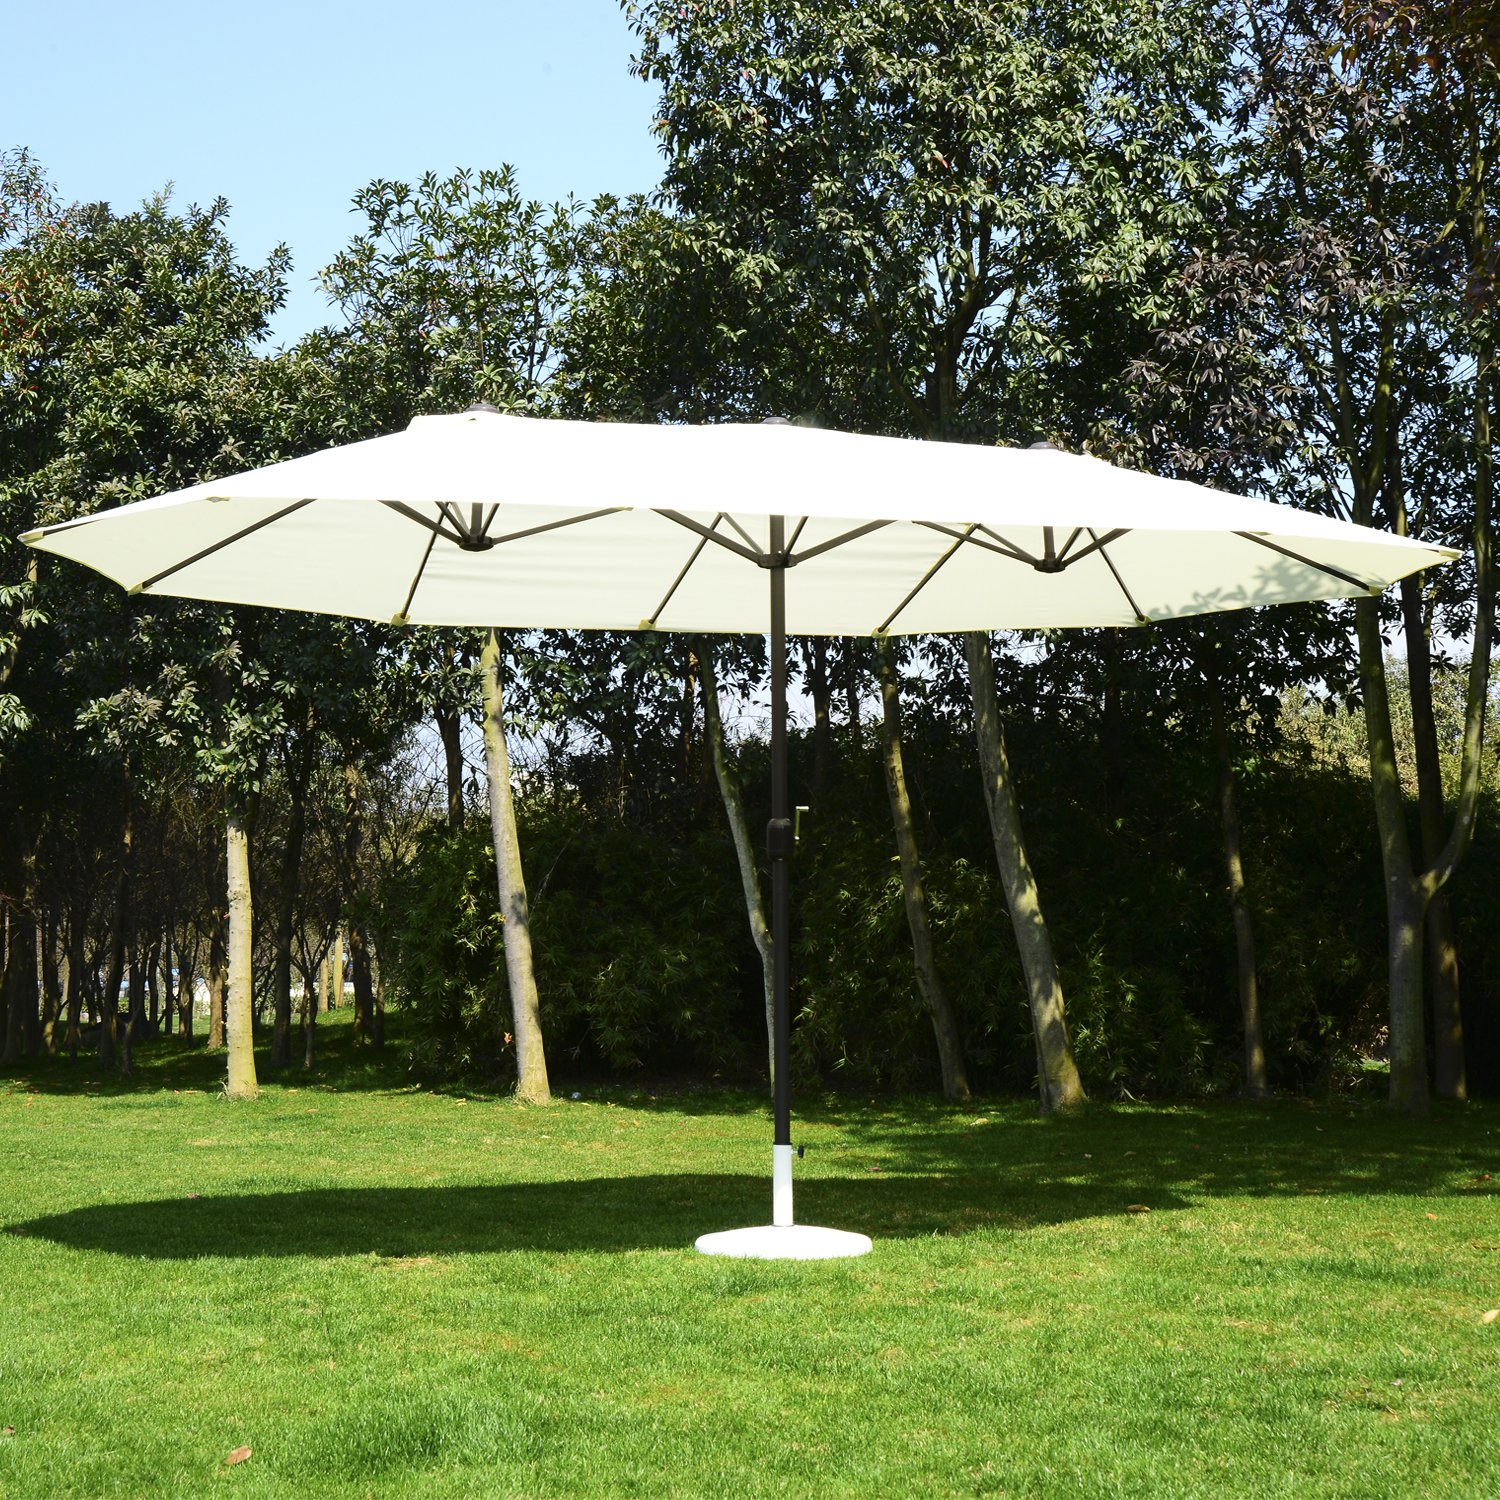 Outsunny 15' Outdoor Patio Market Double-Sided Umbrella - Cream White and  Brown - Amazon Best Sellers: Best Patio Umbrellas